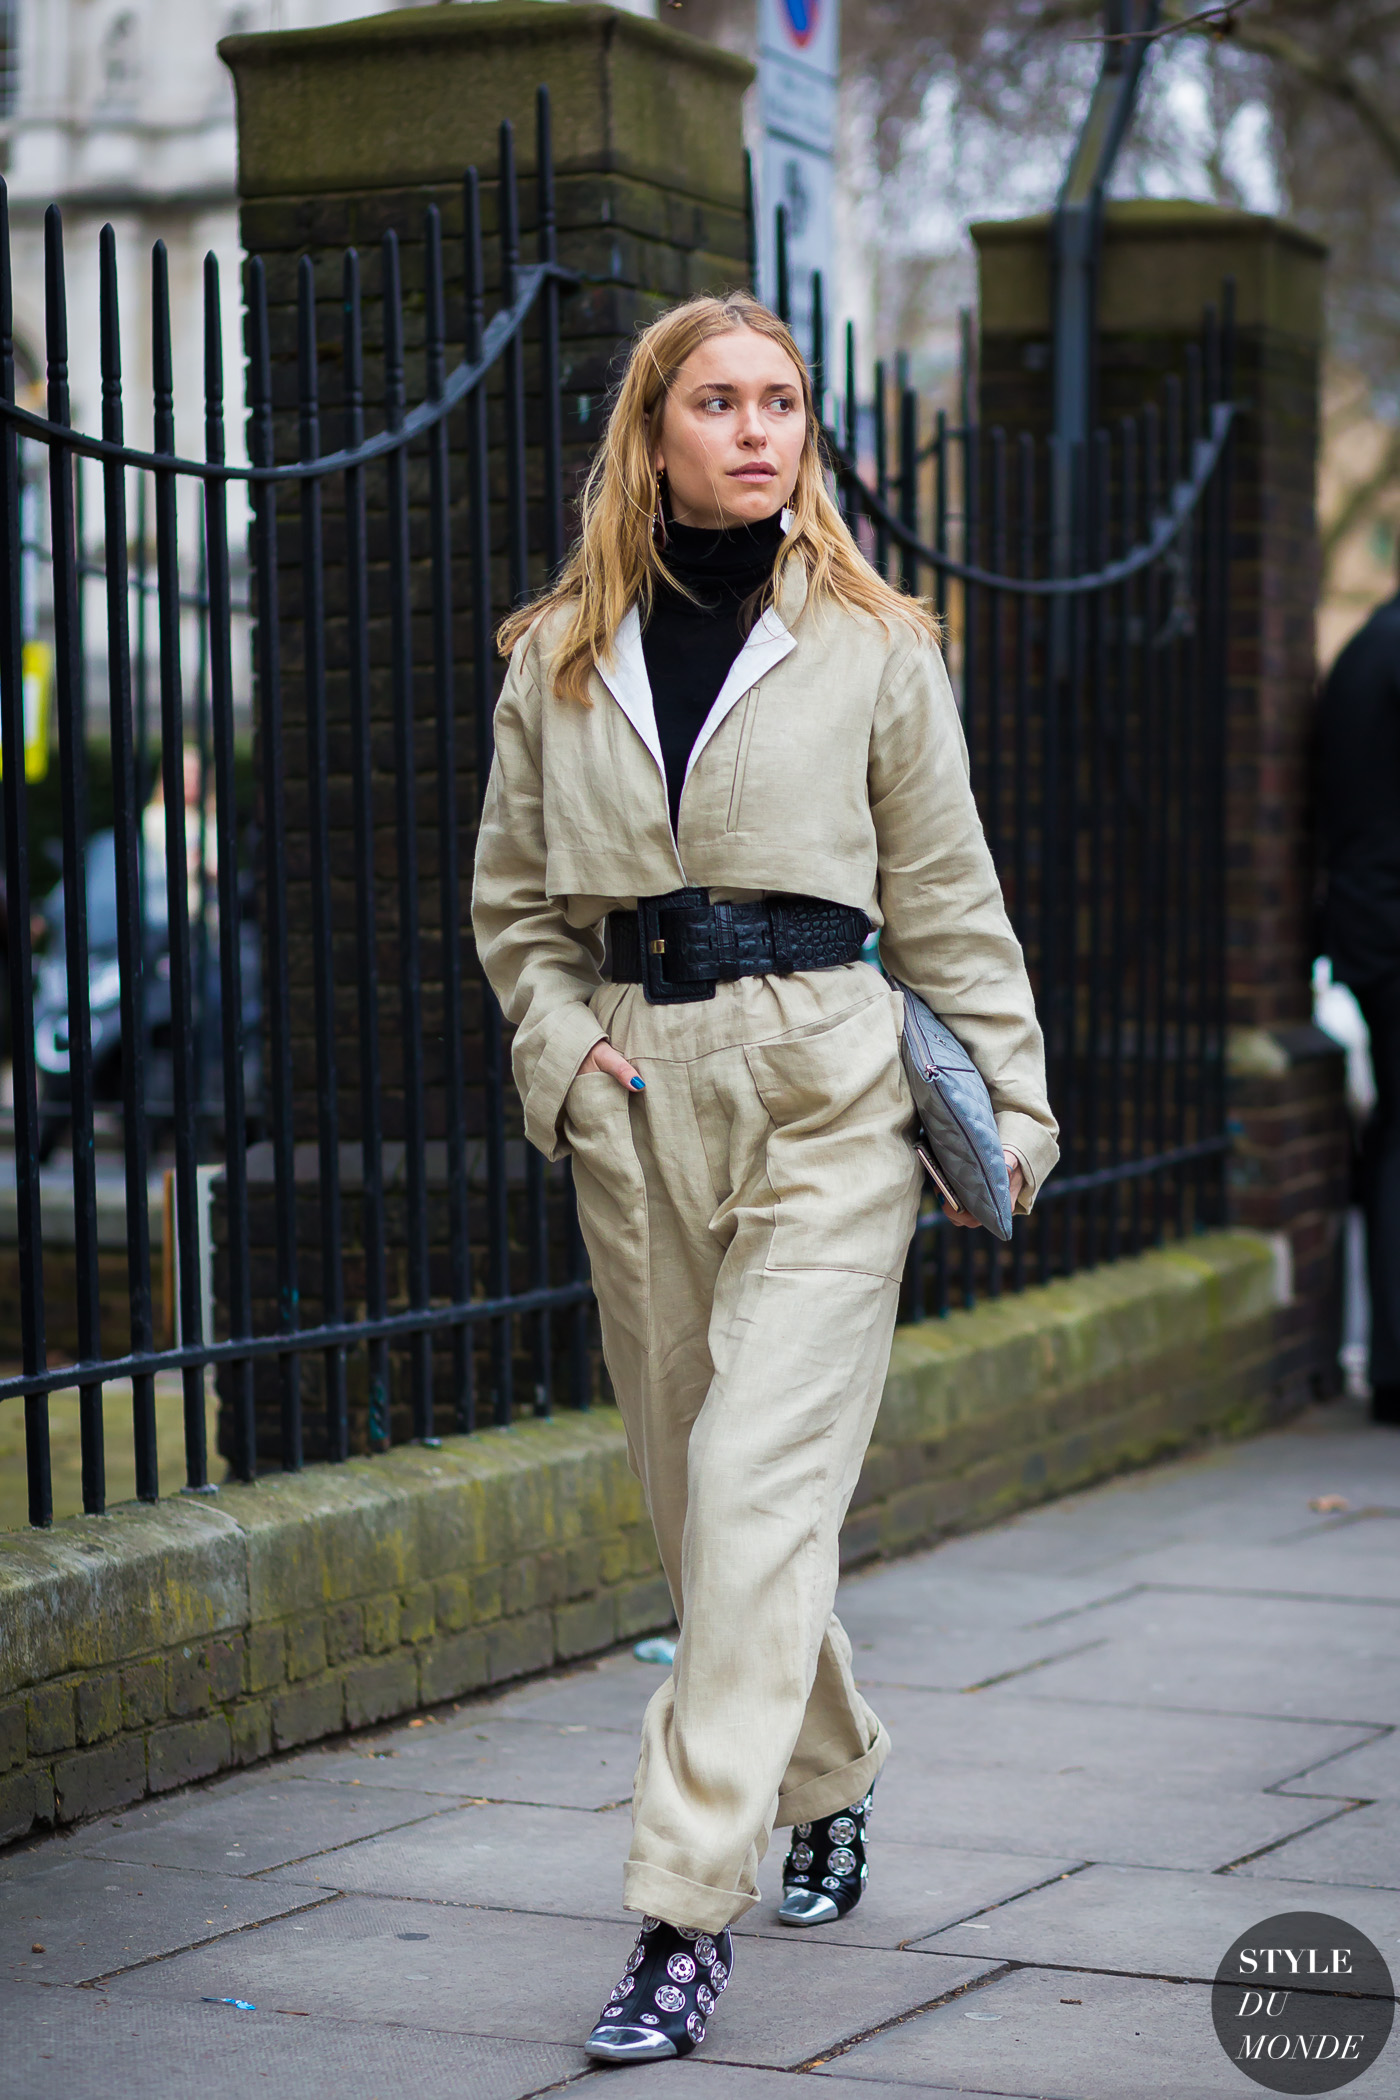 2720335f783 Pernille Teisbaek Street Style Street Fashion Streetsnaps by STYLEDUMONDE Street  Style Fashion Photography